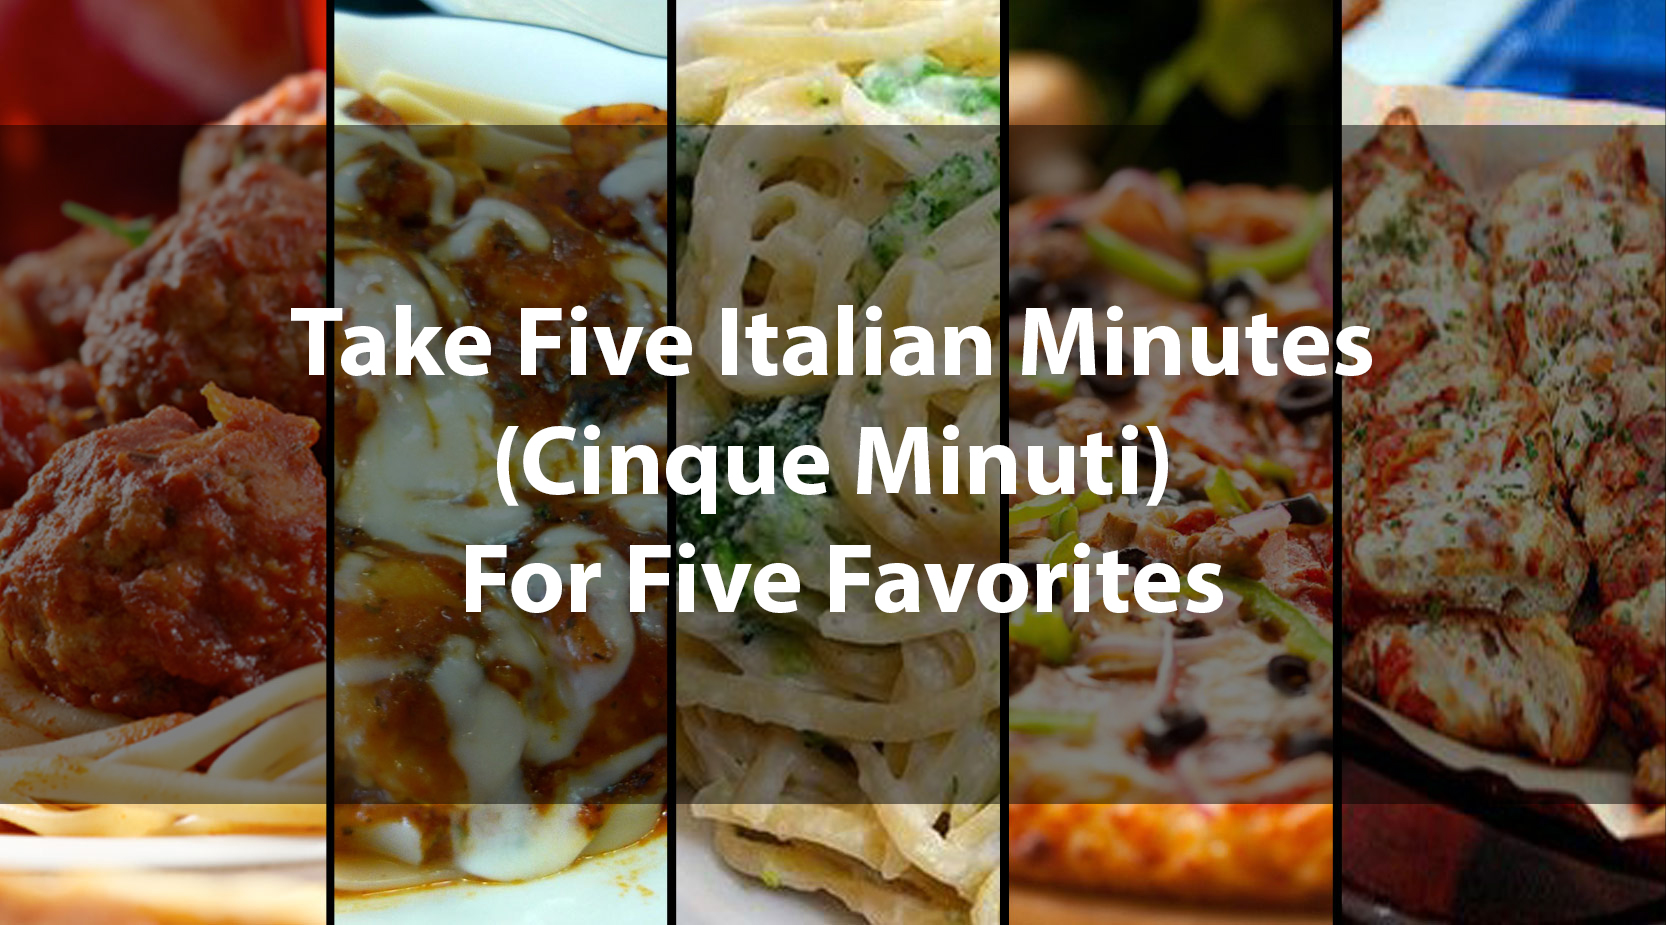 Take Five Minutes (Cinqui Minuti) For Five Favorites